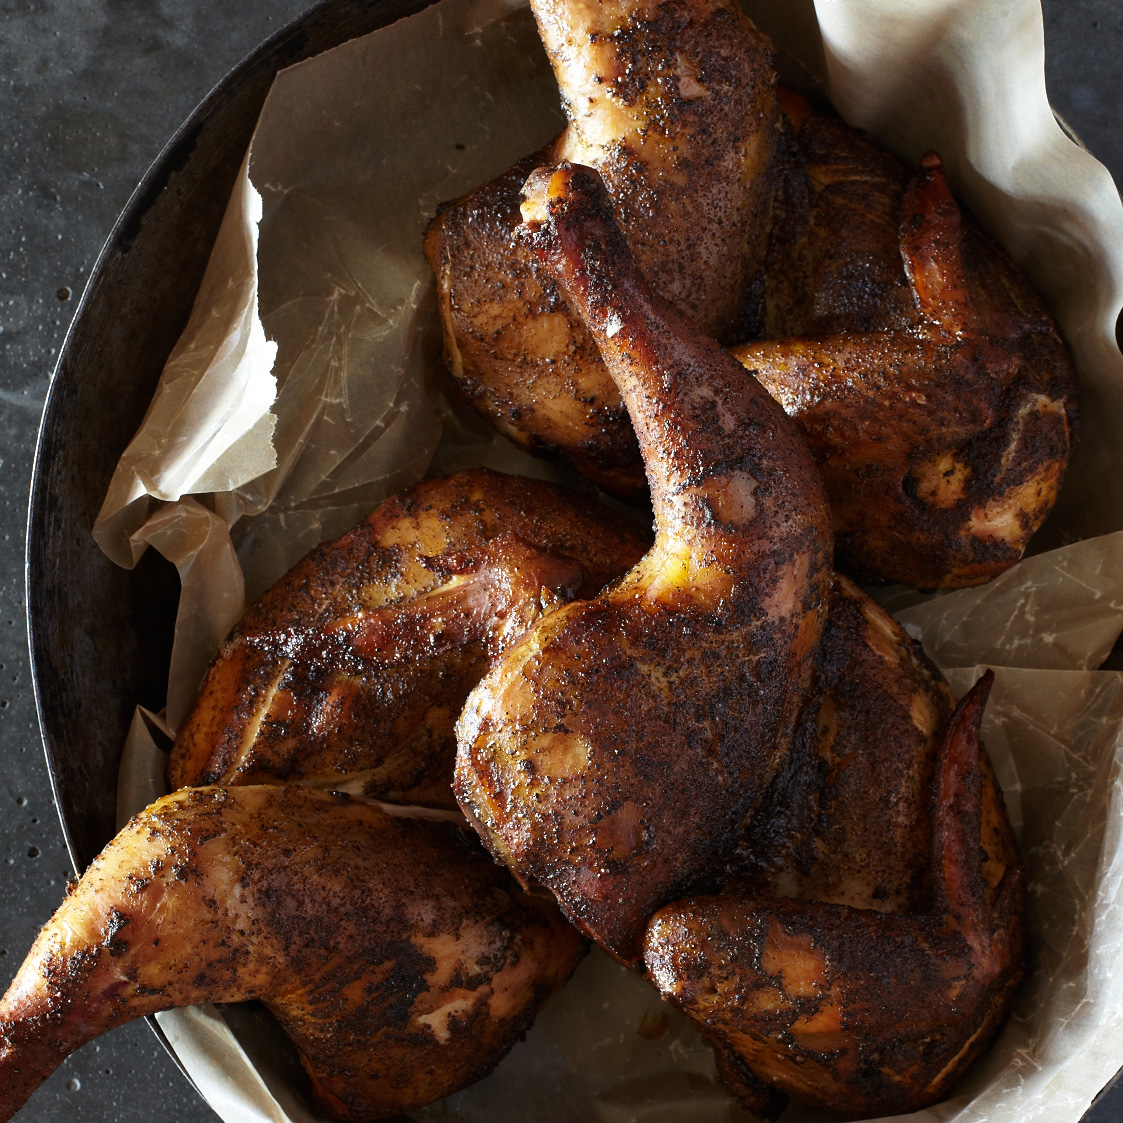 Lemon-Brined Smoked Chickens